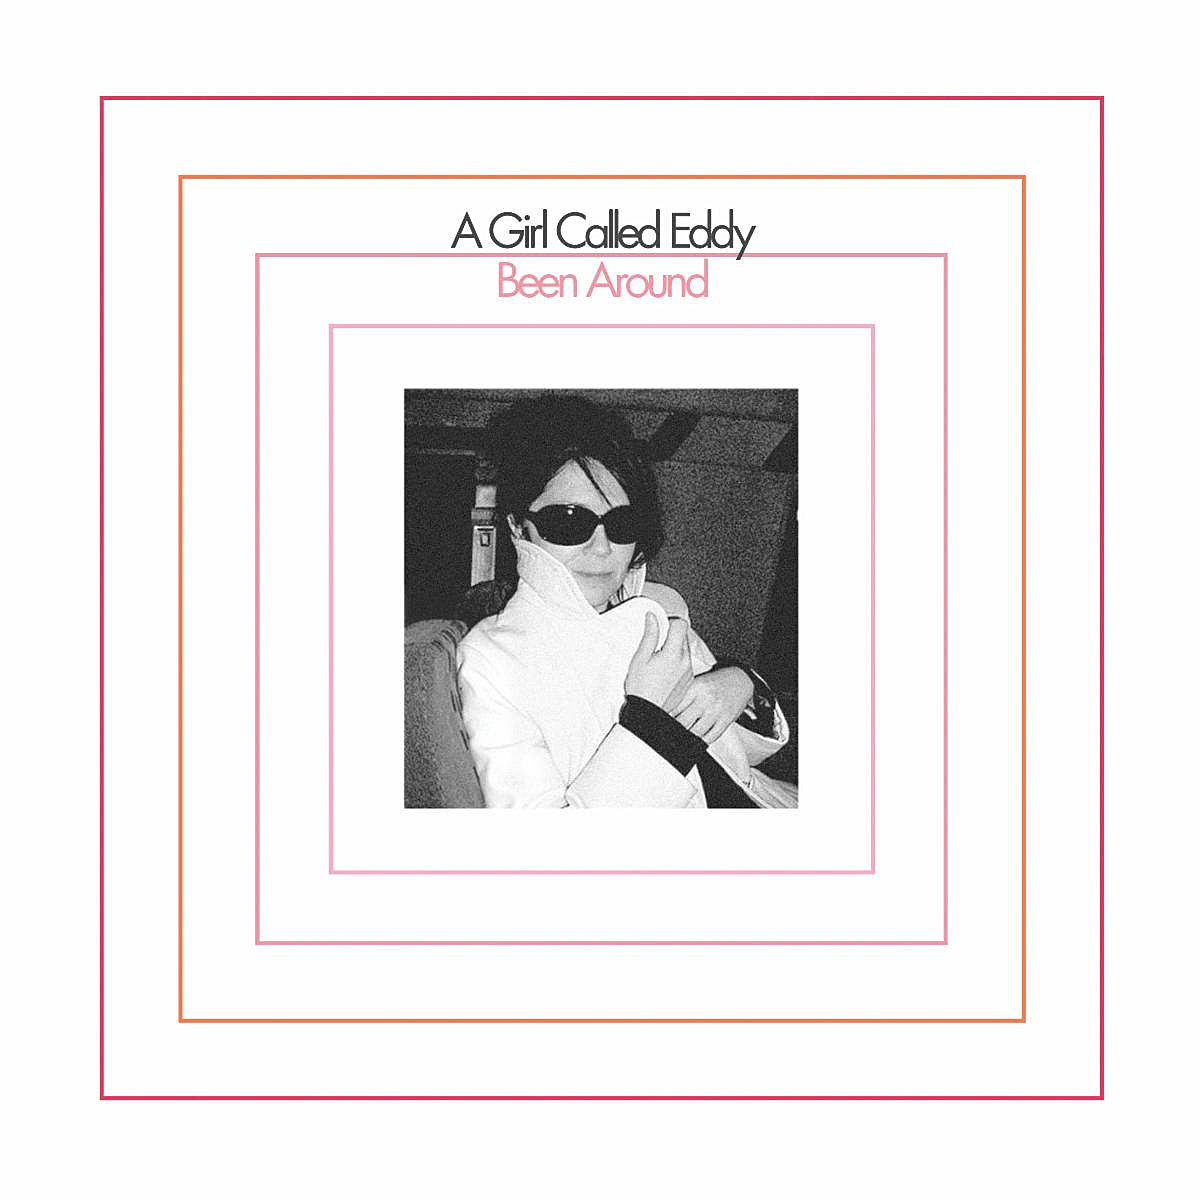 a-girl-called-eddy-been-around